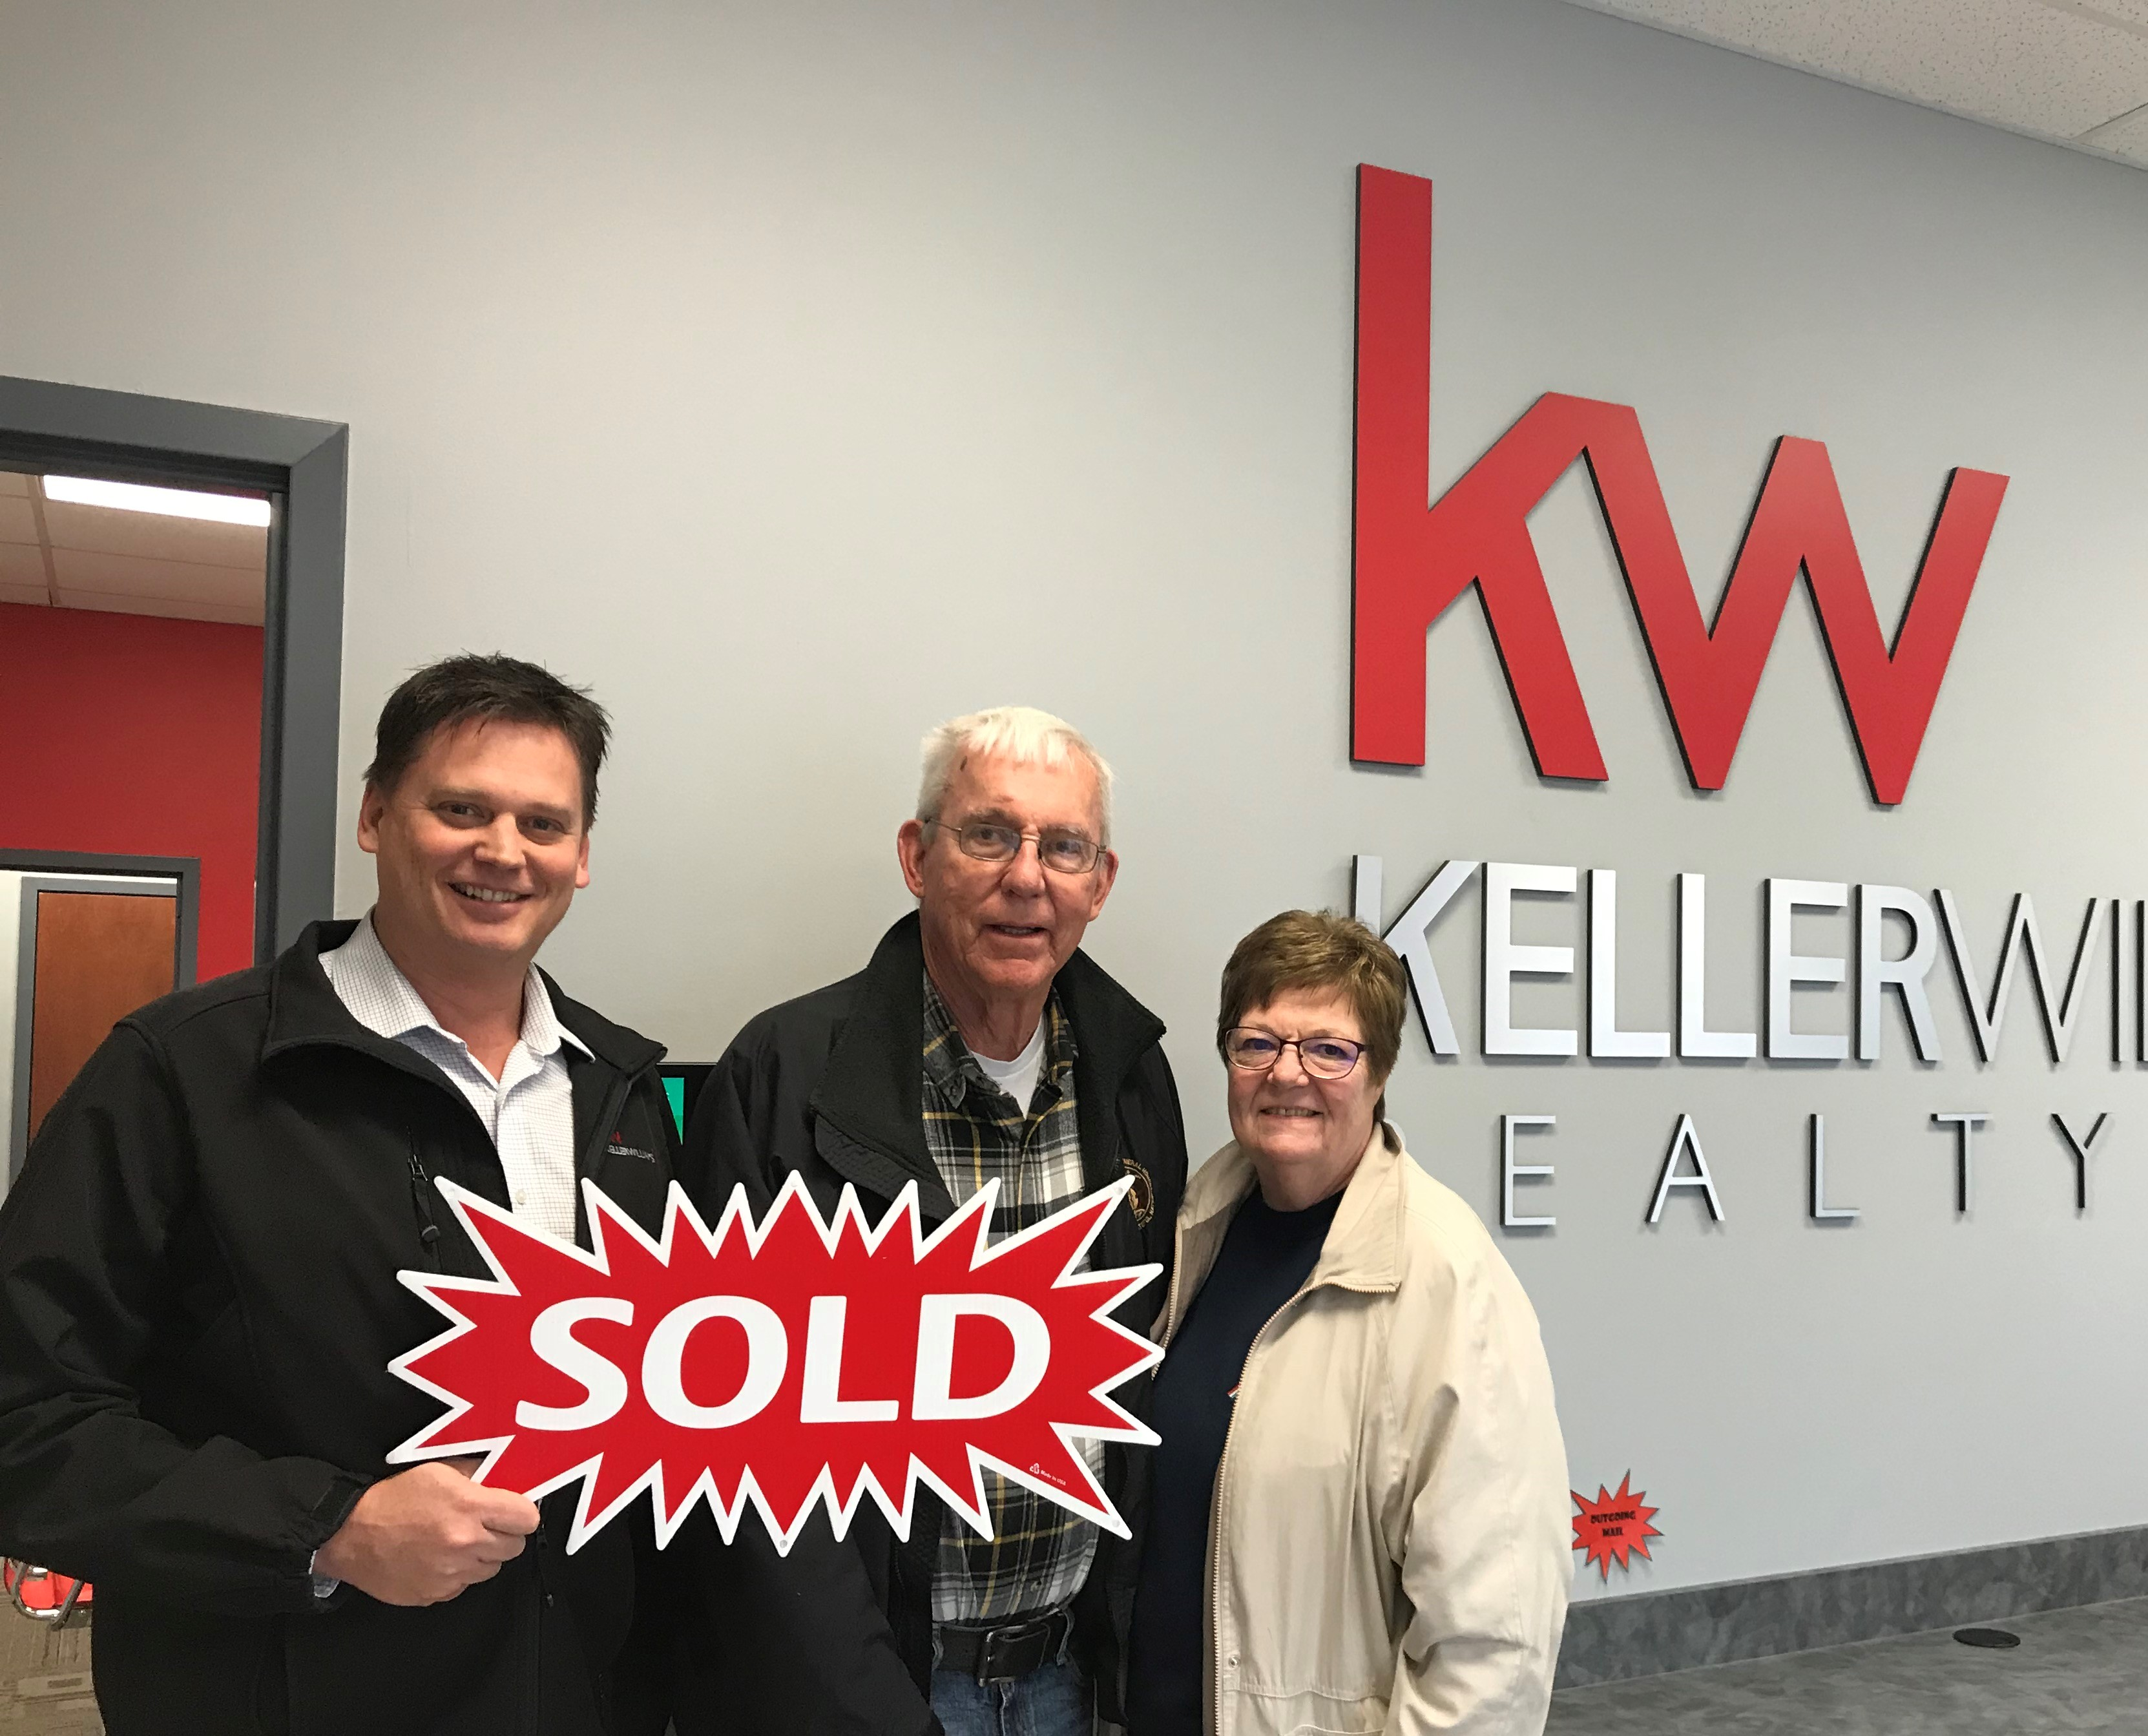 The Chad Wilson Group Home Sellers